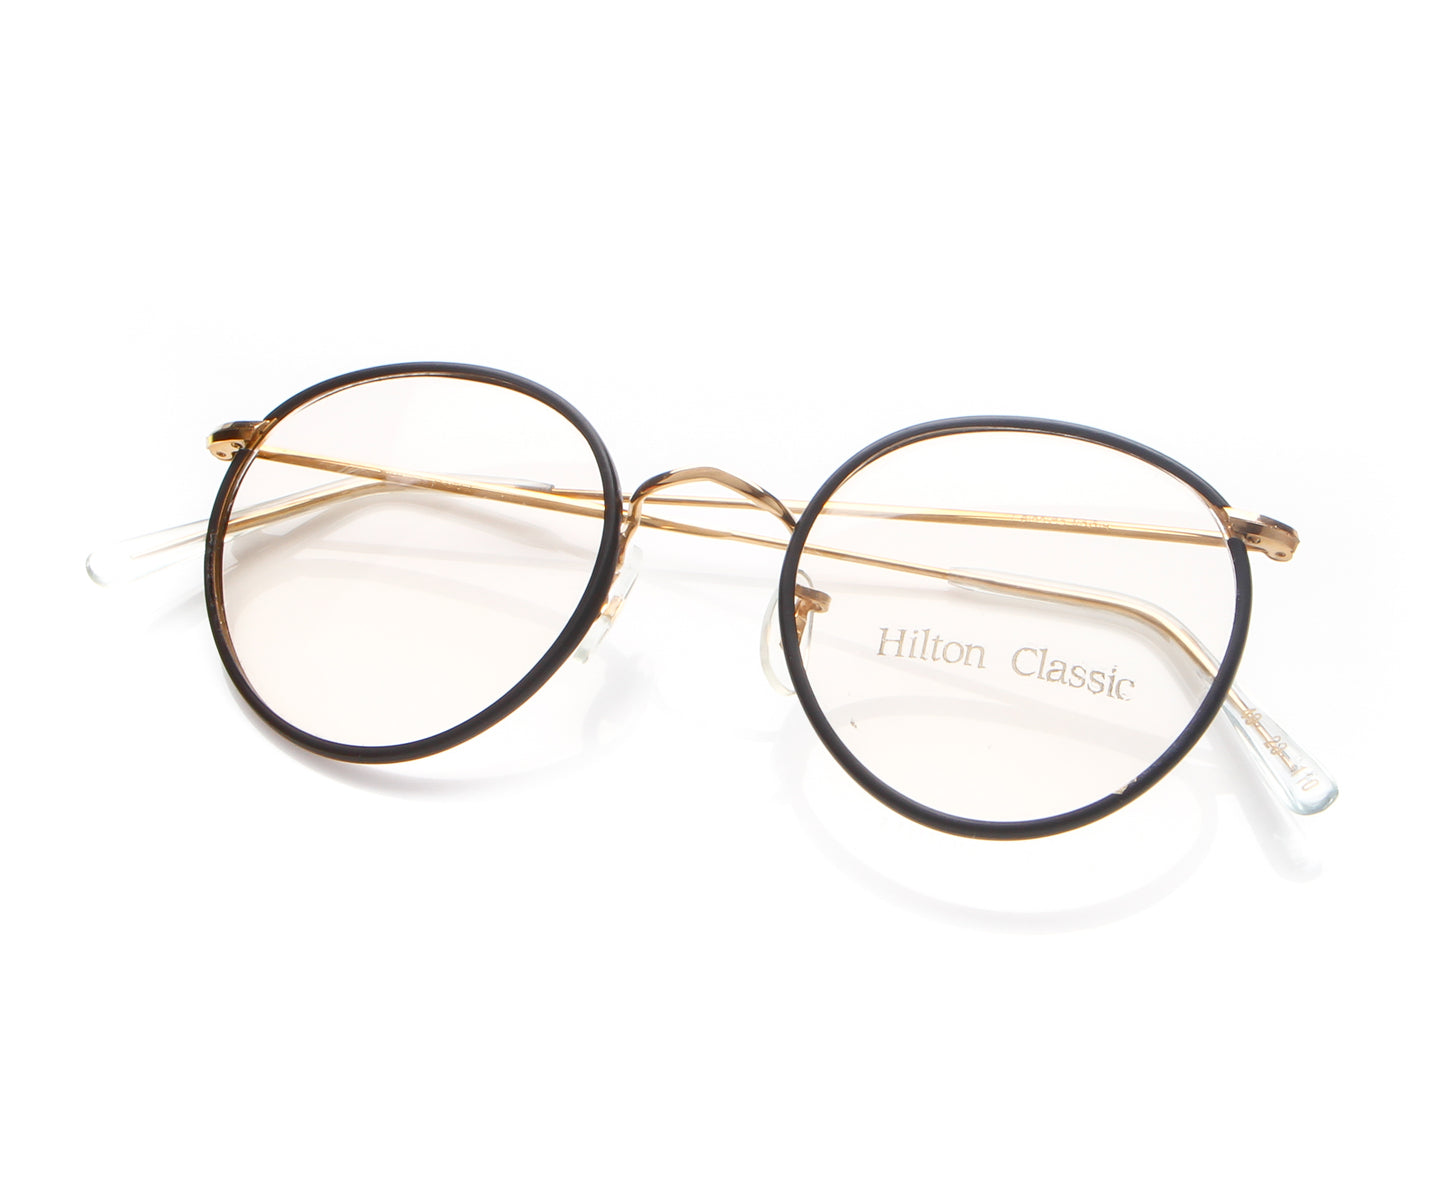 Vintage Hilton Classic 1 10 Thumb, Hilton , glasses frames, eyeglasses online, eyeglass frames, mens glasses, womens glasses, buy glasses online, designer eyeglasses, vintage sunglasses, retro sunglasses, vintage glasses, sunglass, eyeglass, glasses, lens, vintage frames company, vf